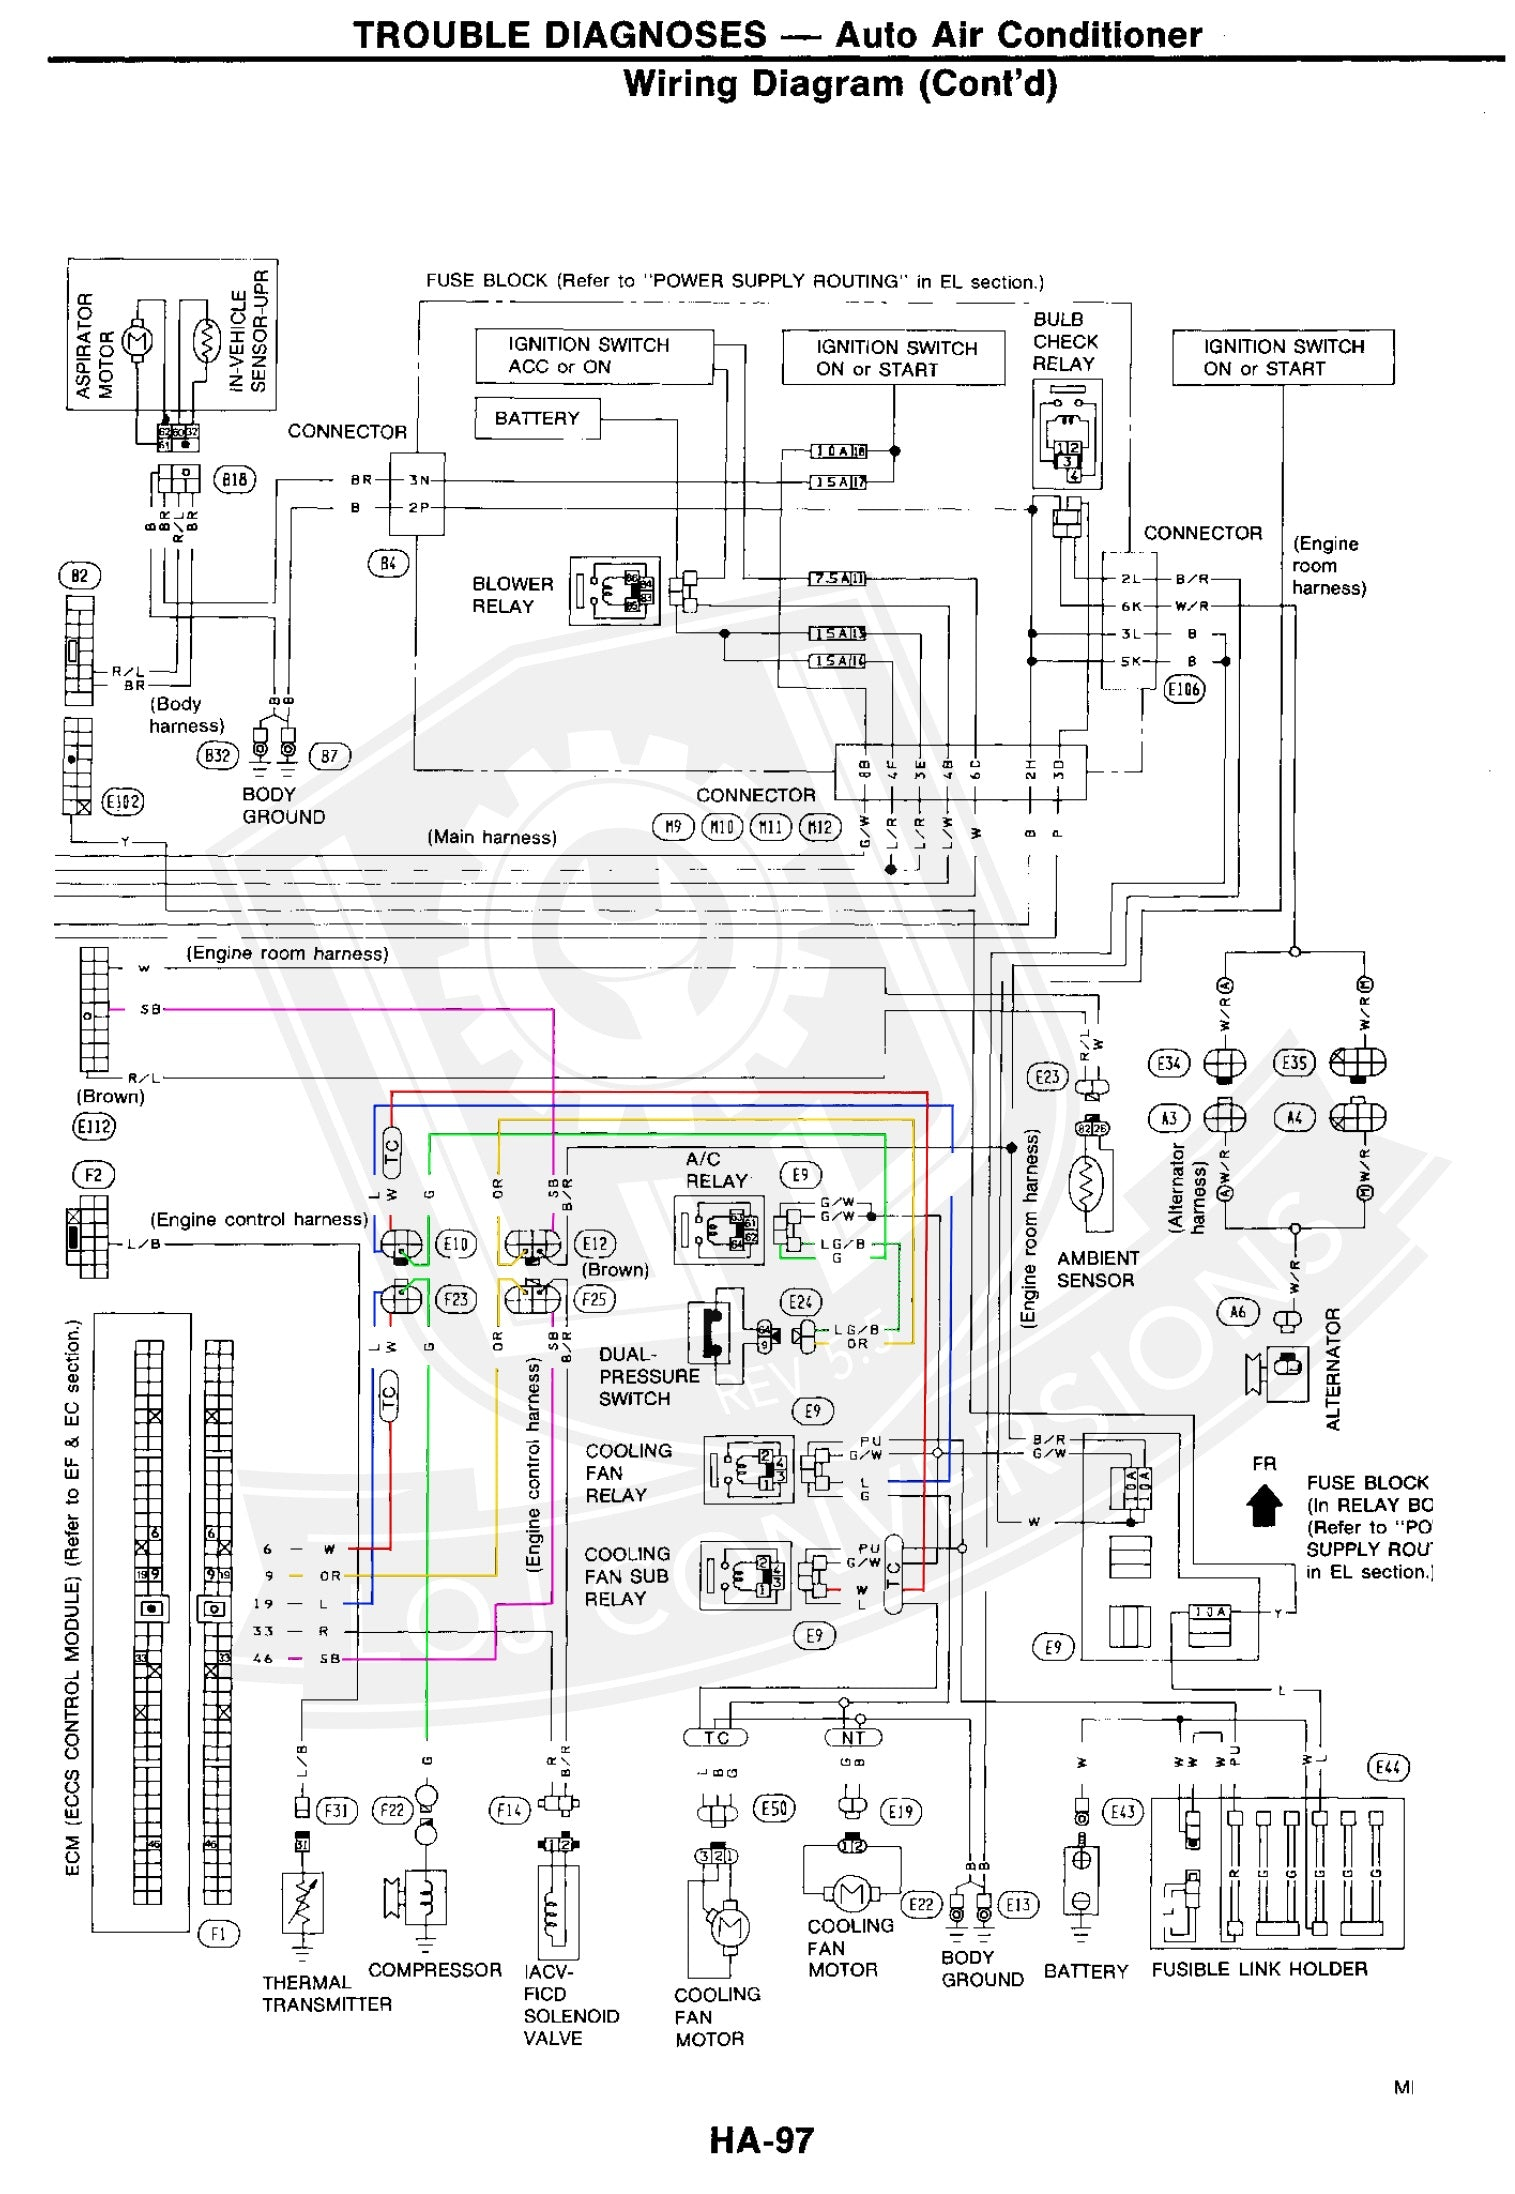 300ZX_AC_Wiring_Engine_Swap_02?9464186101000764173 wiring the ac in a 300zx engine conversion loj conversions Wiring Harness Diagram at creativeand.co